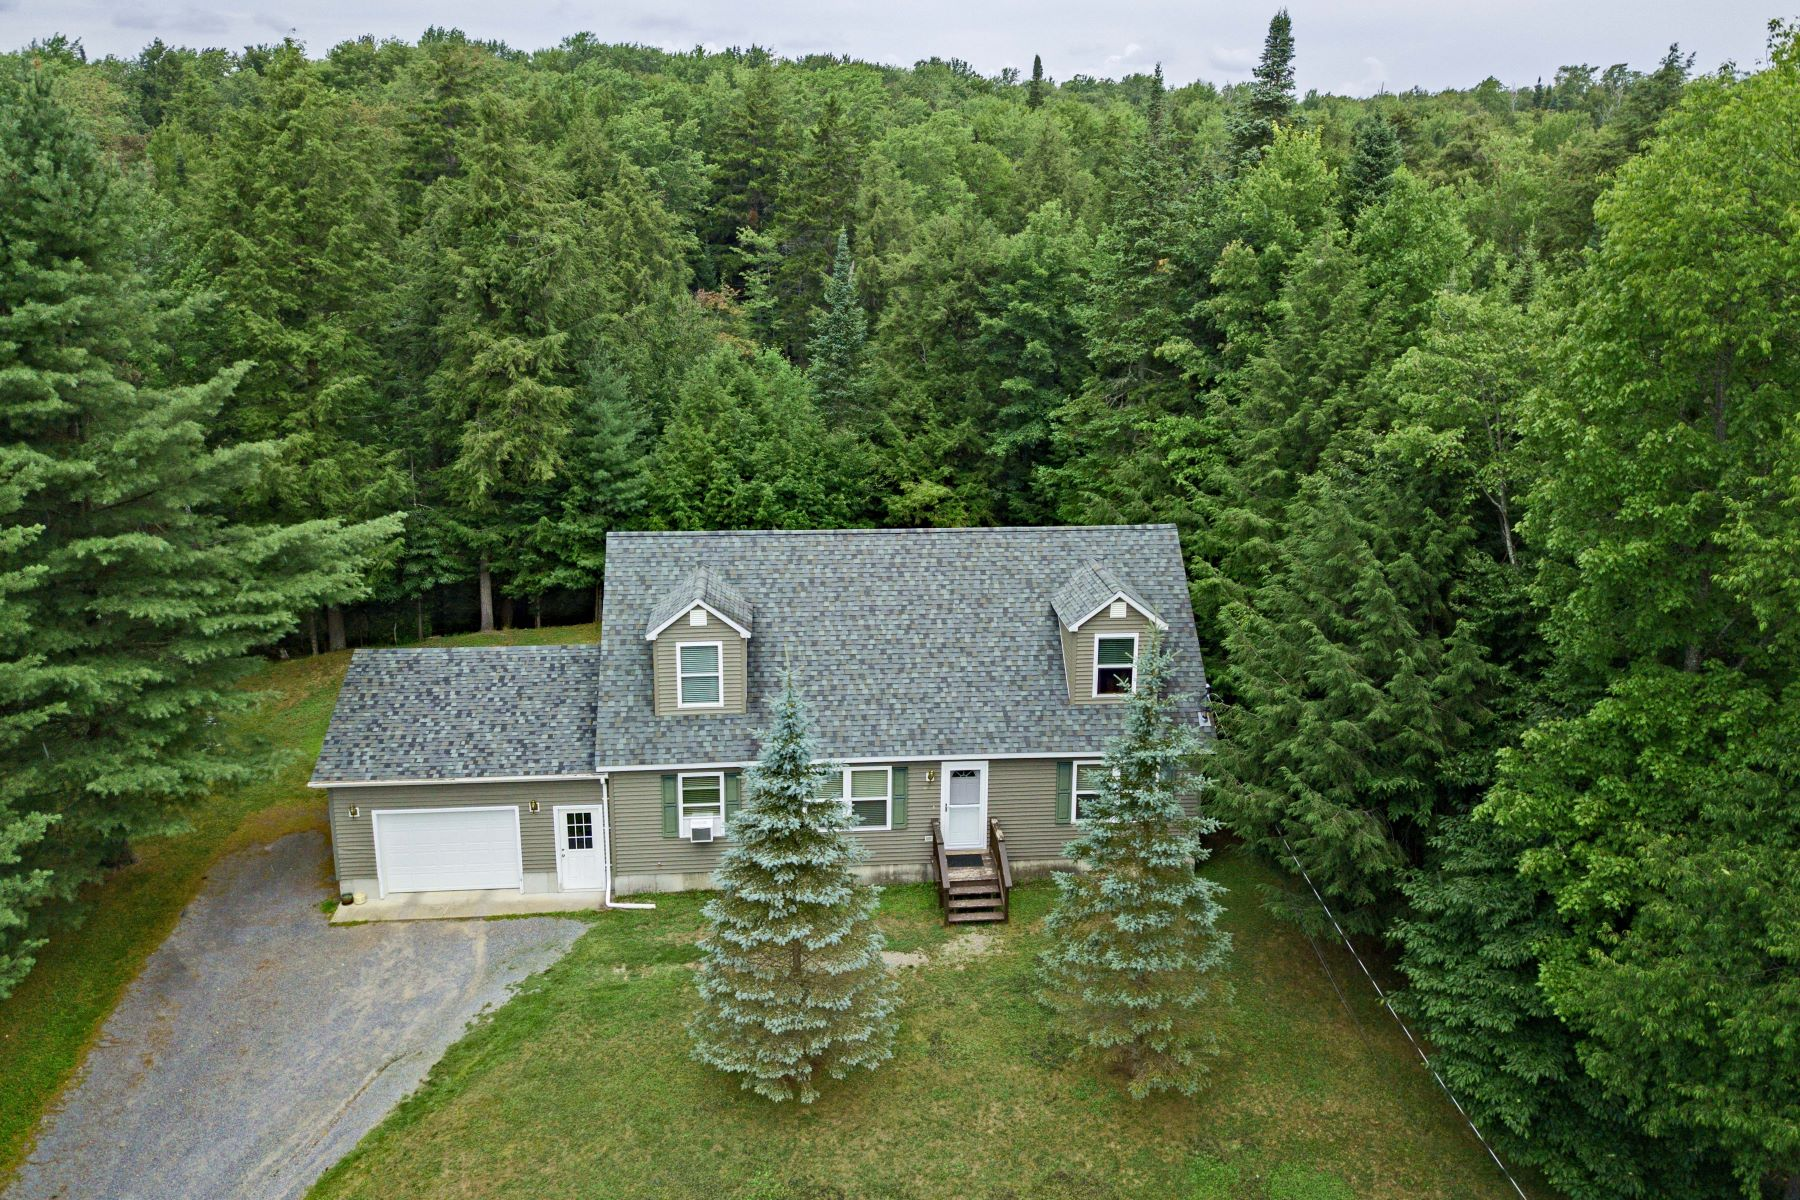 Single Family Homes for Sale at Riverfront home in a great neighborhood 171 Riverside Drive Old Forge, New York 13420 United States